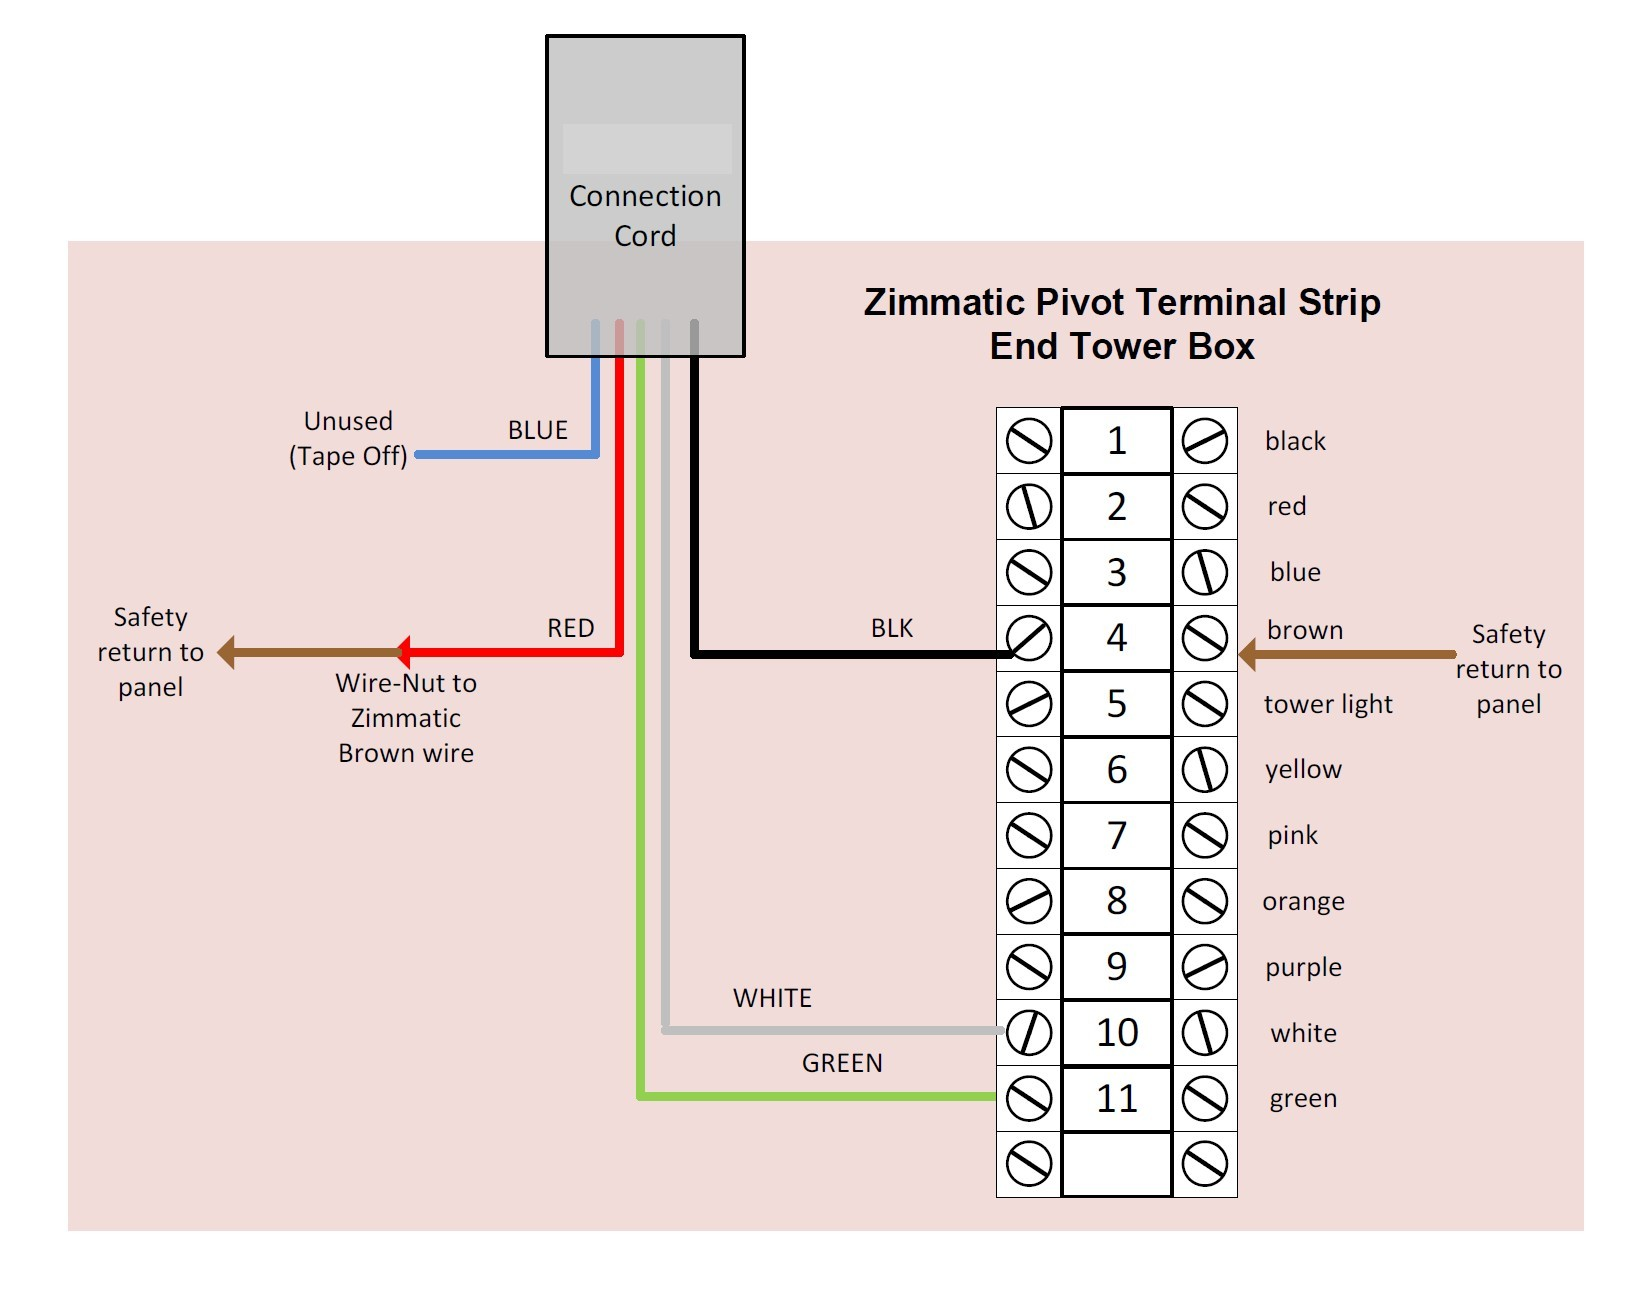 Zimmatic Pivot Parts Awesome Wiring Diagram Image Electrical Schematic New Rh Mainetreasurechest Basic Diagrams